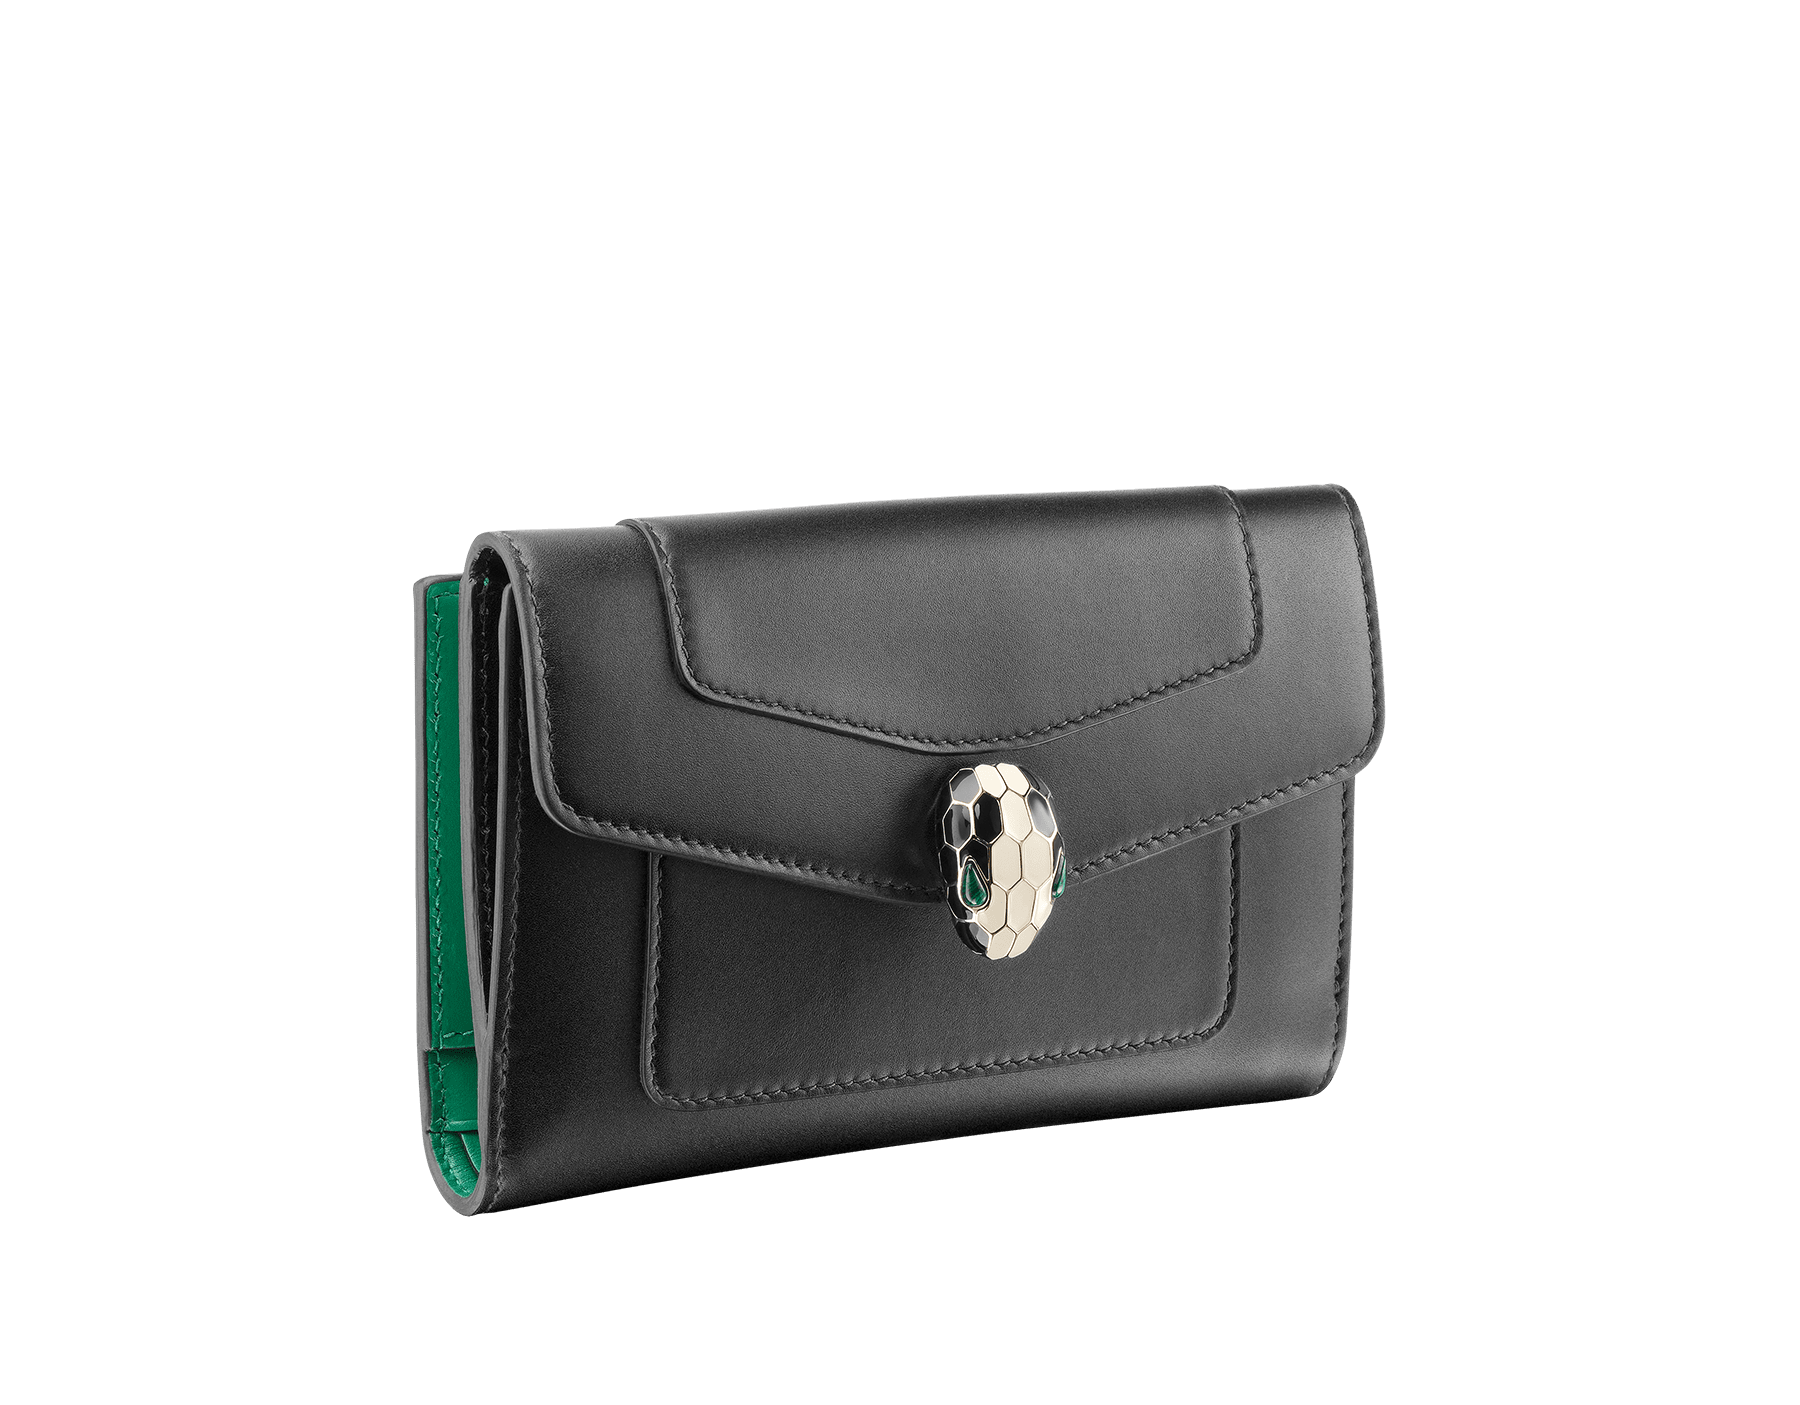 Compact pochette in black calf leather, emerald green calf leather and malachite nappa lining. Brass light gold plated Serpenti head stud closure with green malachite eyes. 282664 image 1